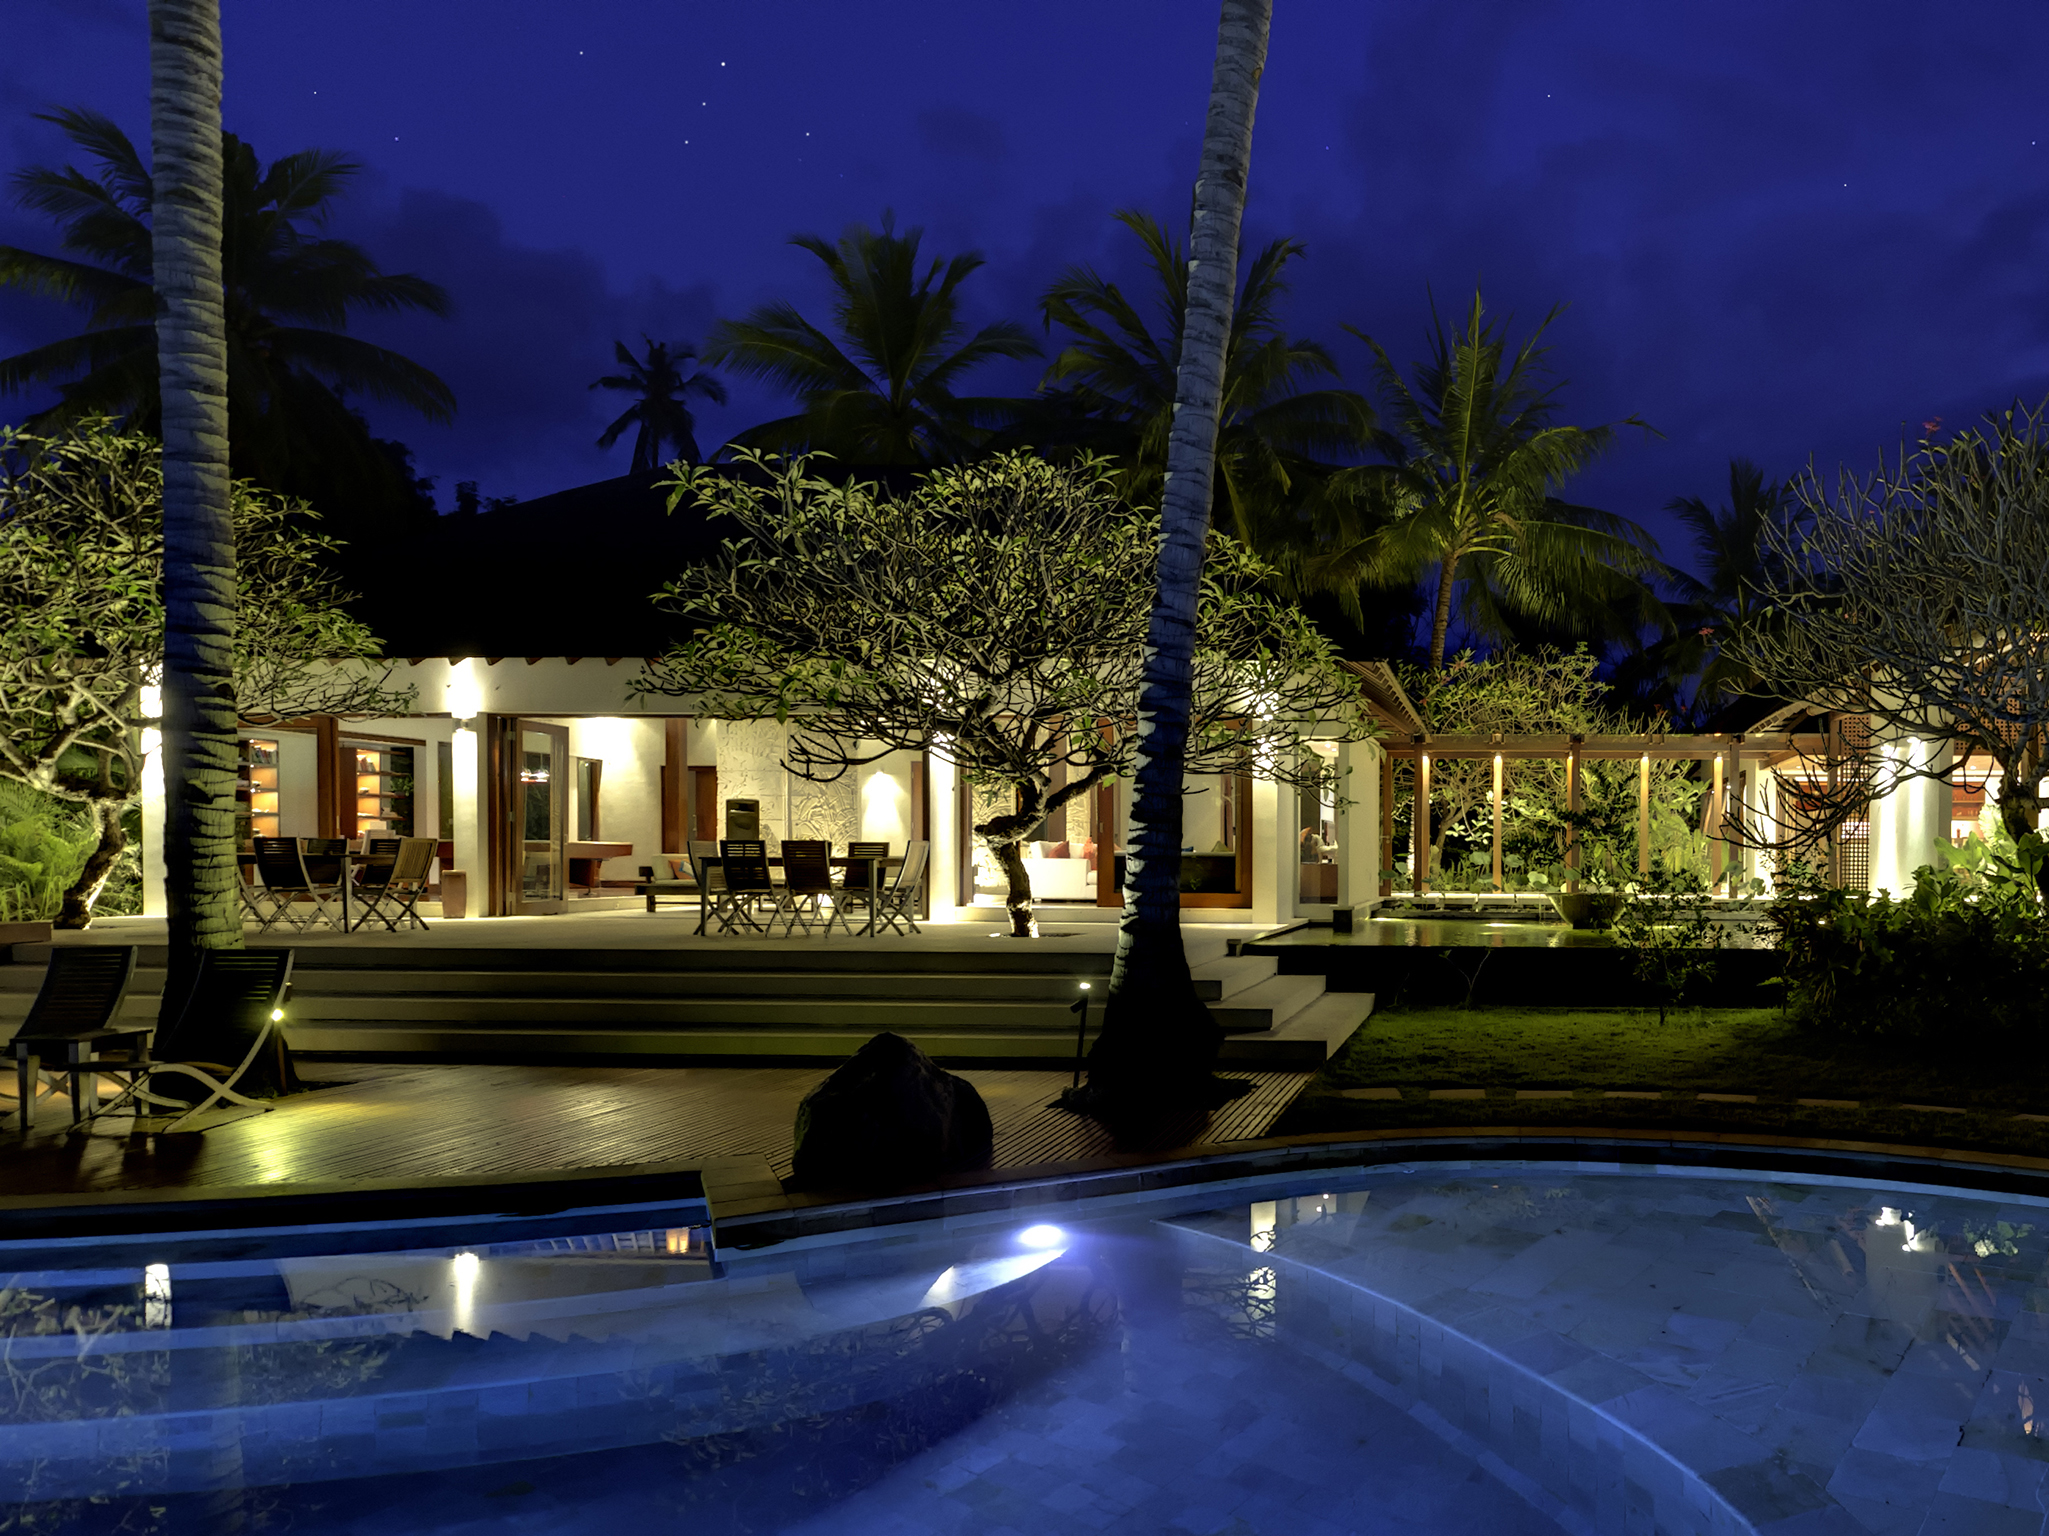 15-The Anandita - Pool and living room at night.jpg